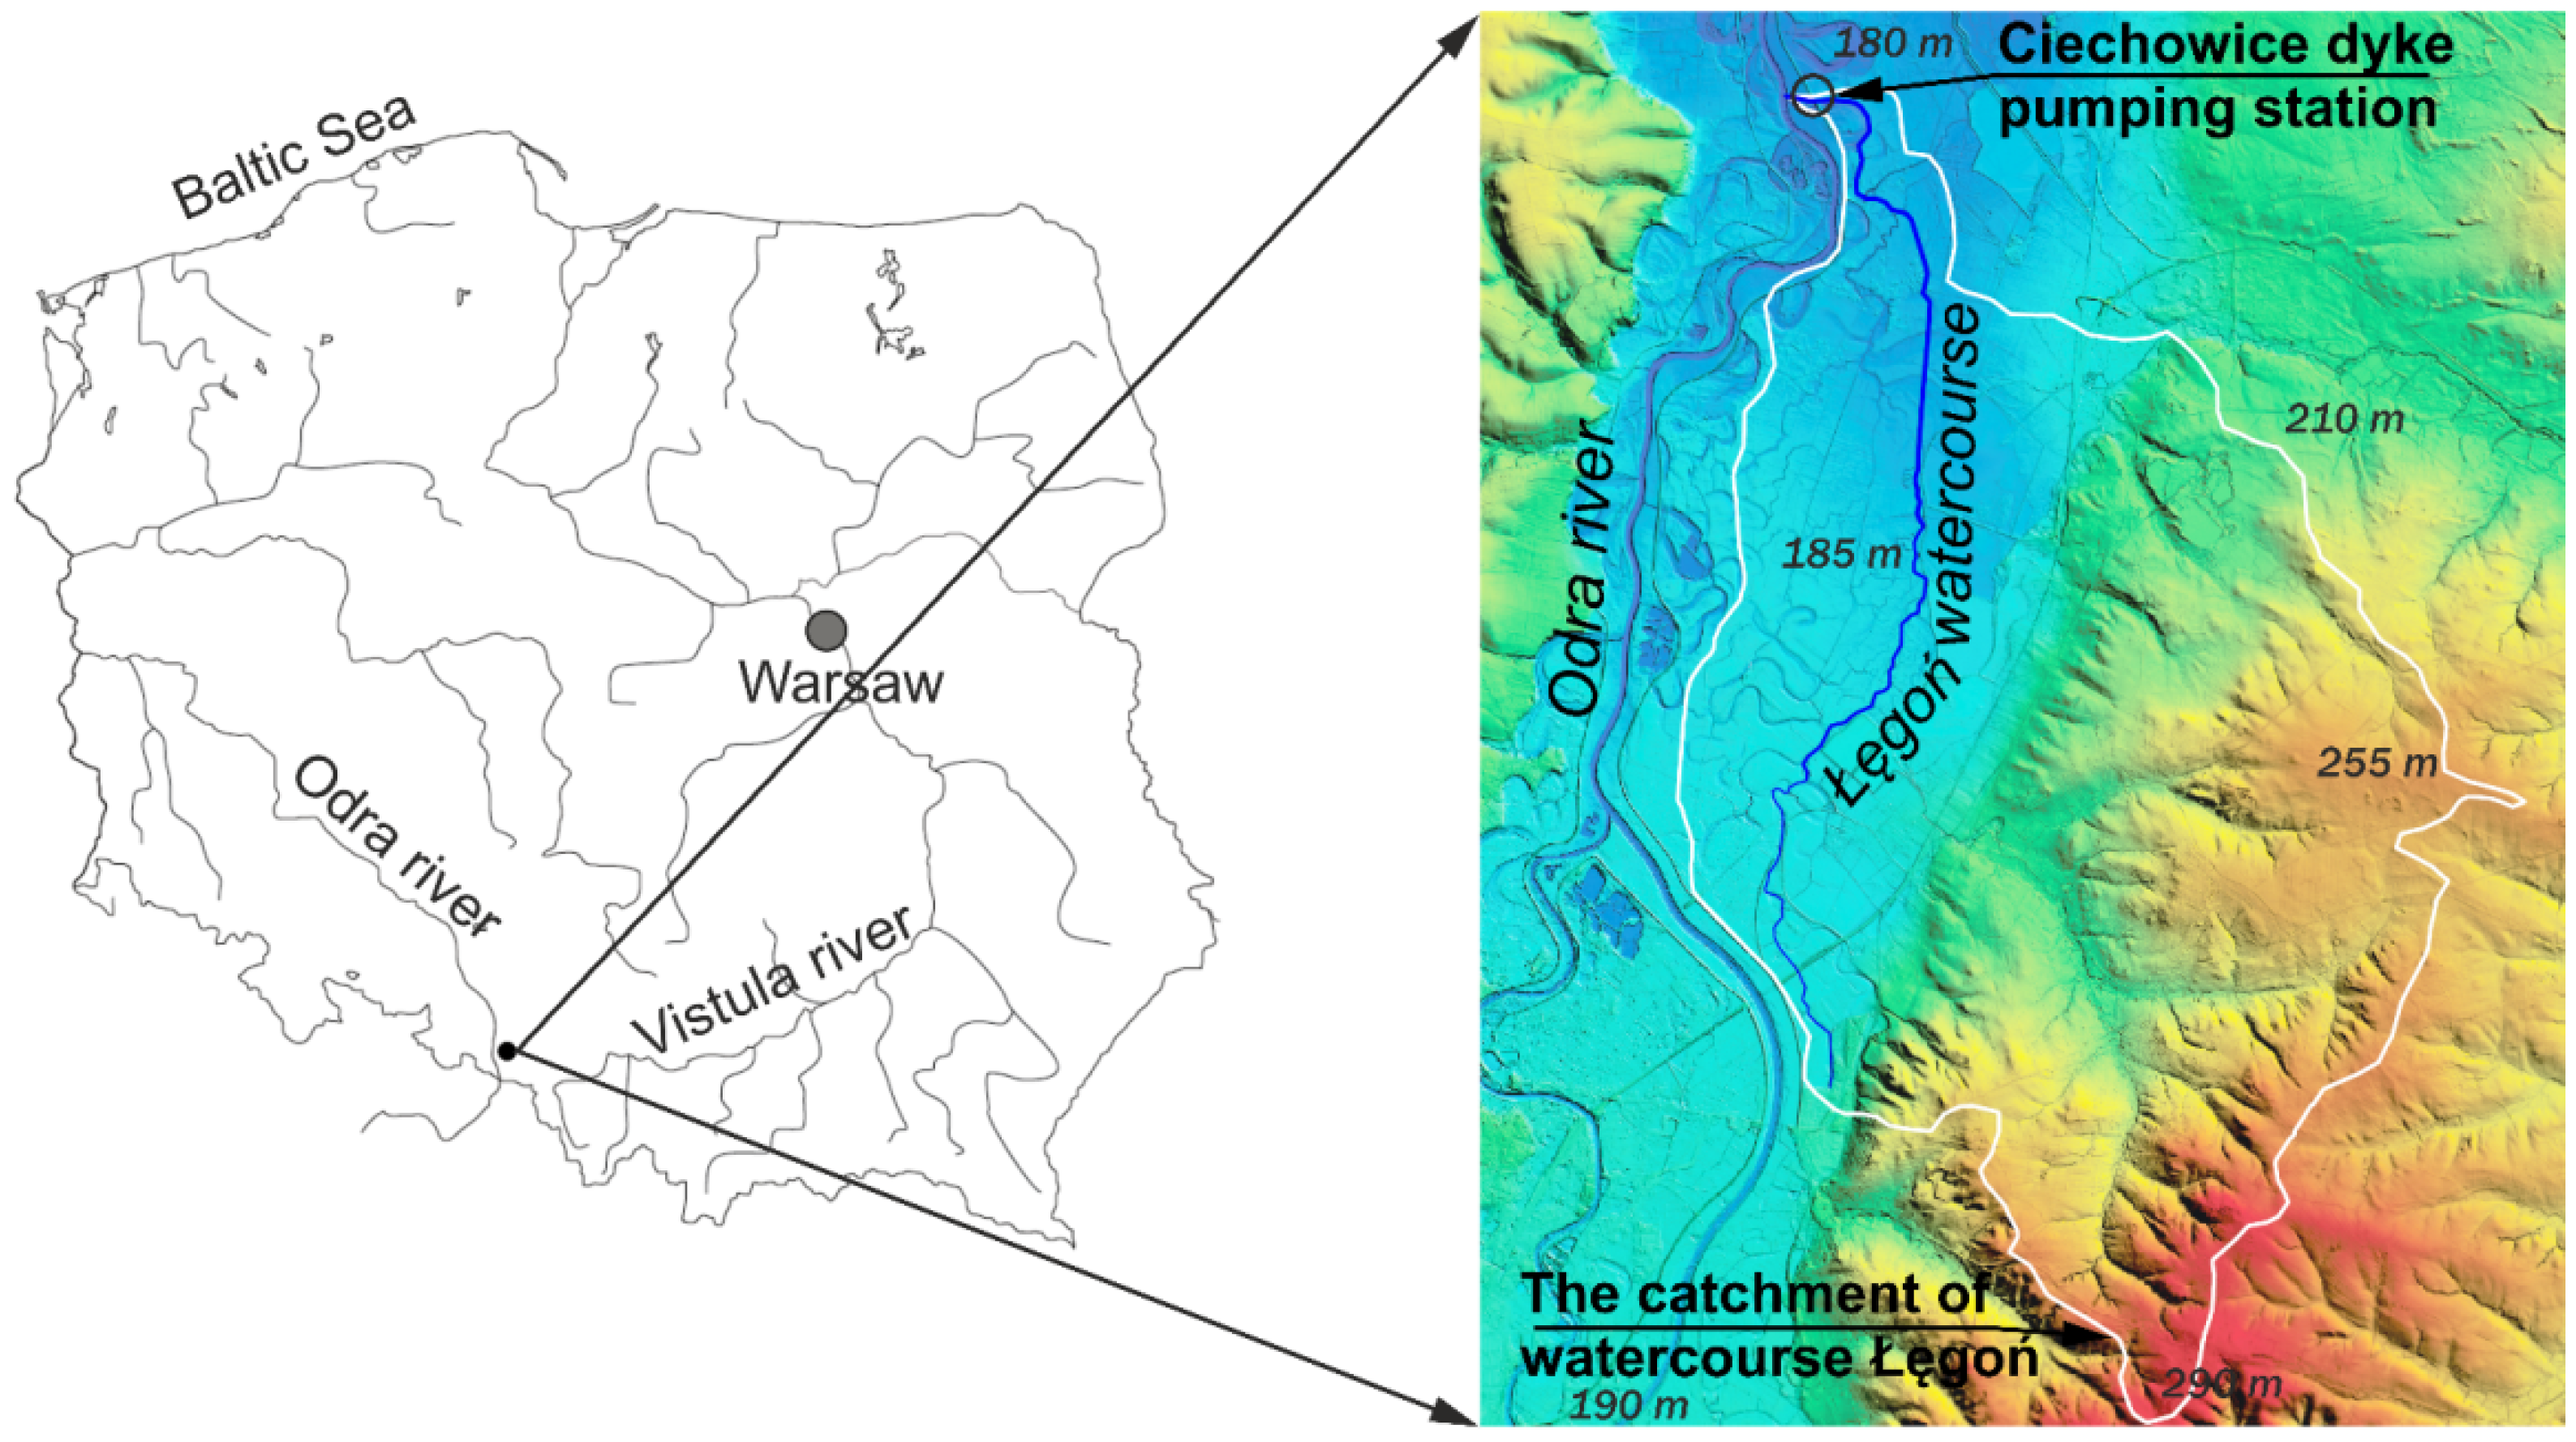 Water | Free Full-Text | Hydrological Analysis of a Dyke Pumping